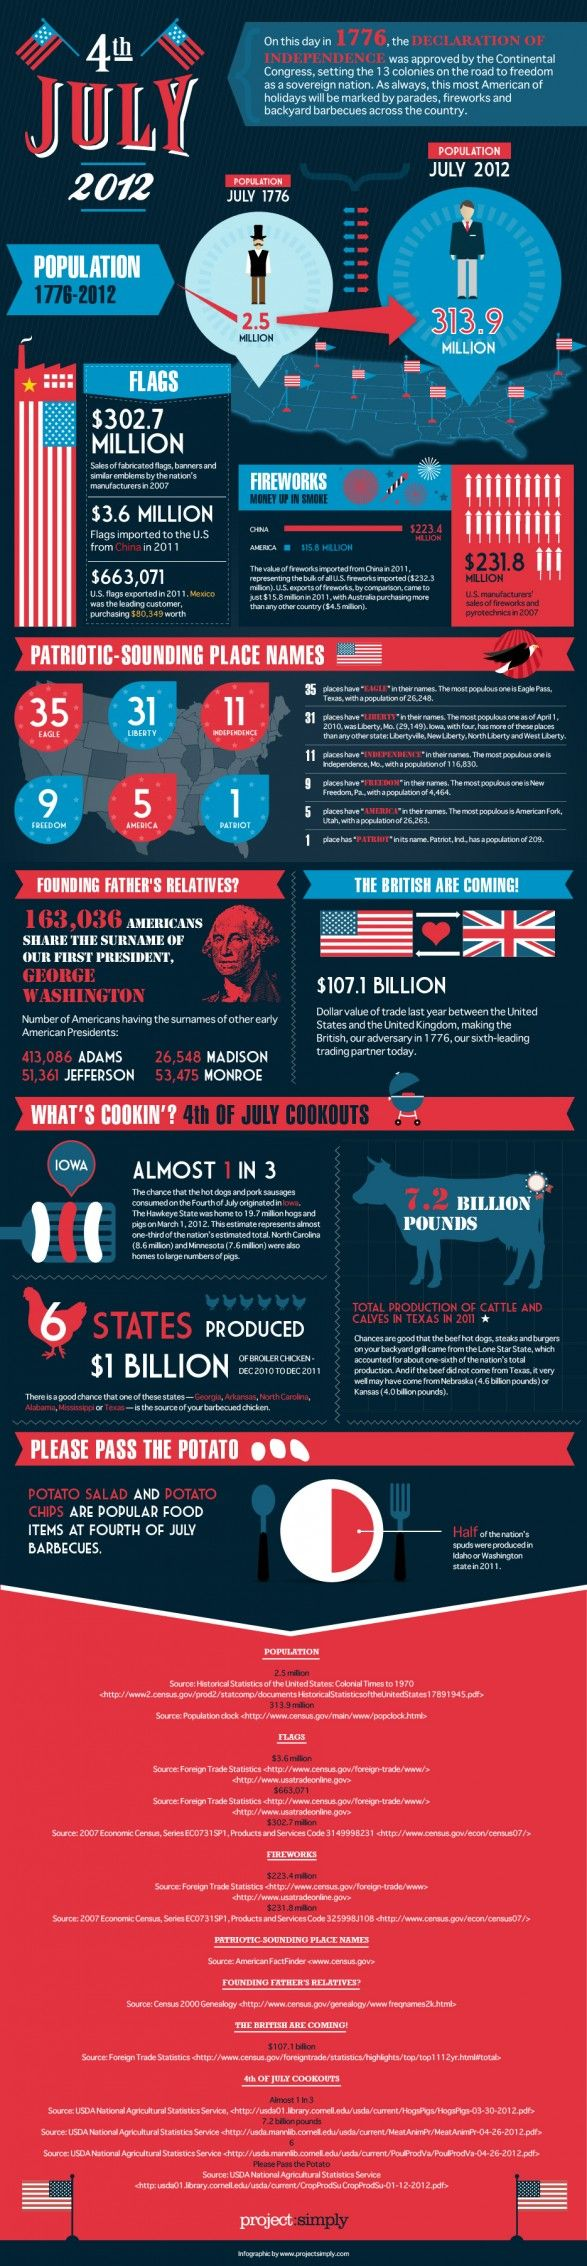 4th of July 2012July Infographic, American Infographic, American Celebrities, Holiday Infographic, Celebrities Independence, 4Th Of July, 4Th July, Independence Day, July 2012